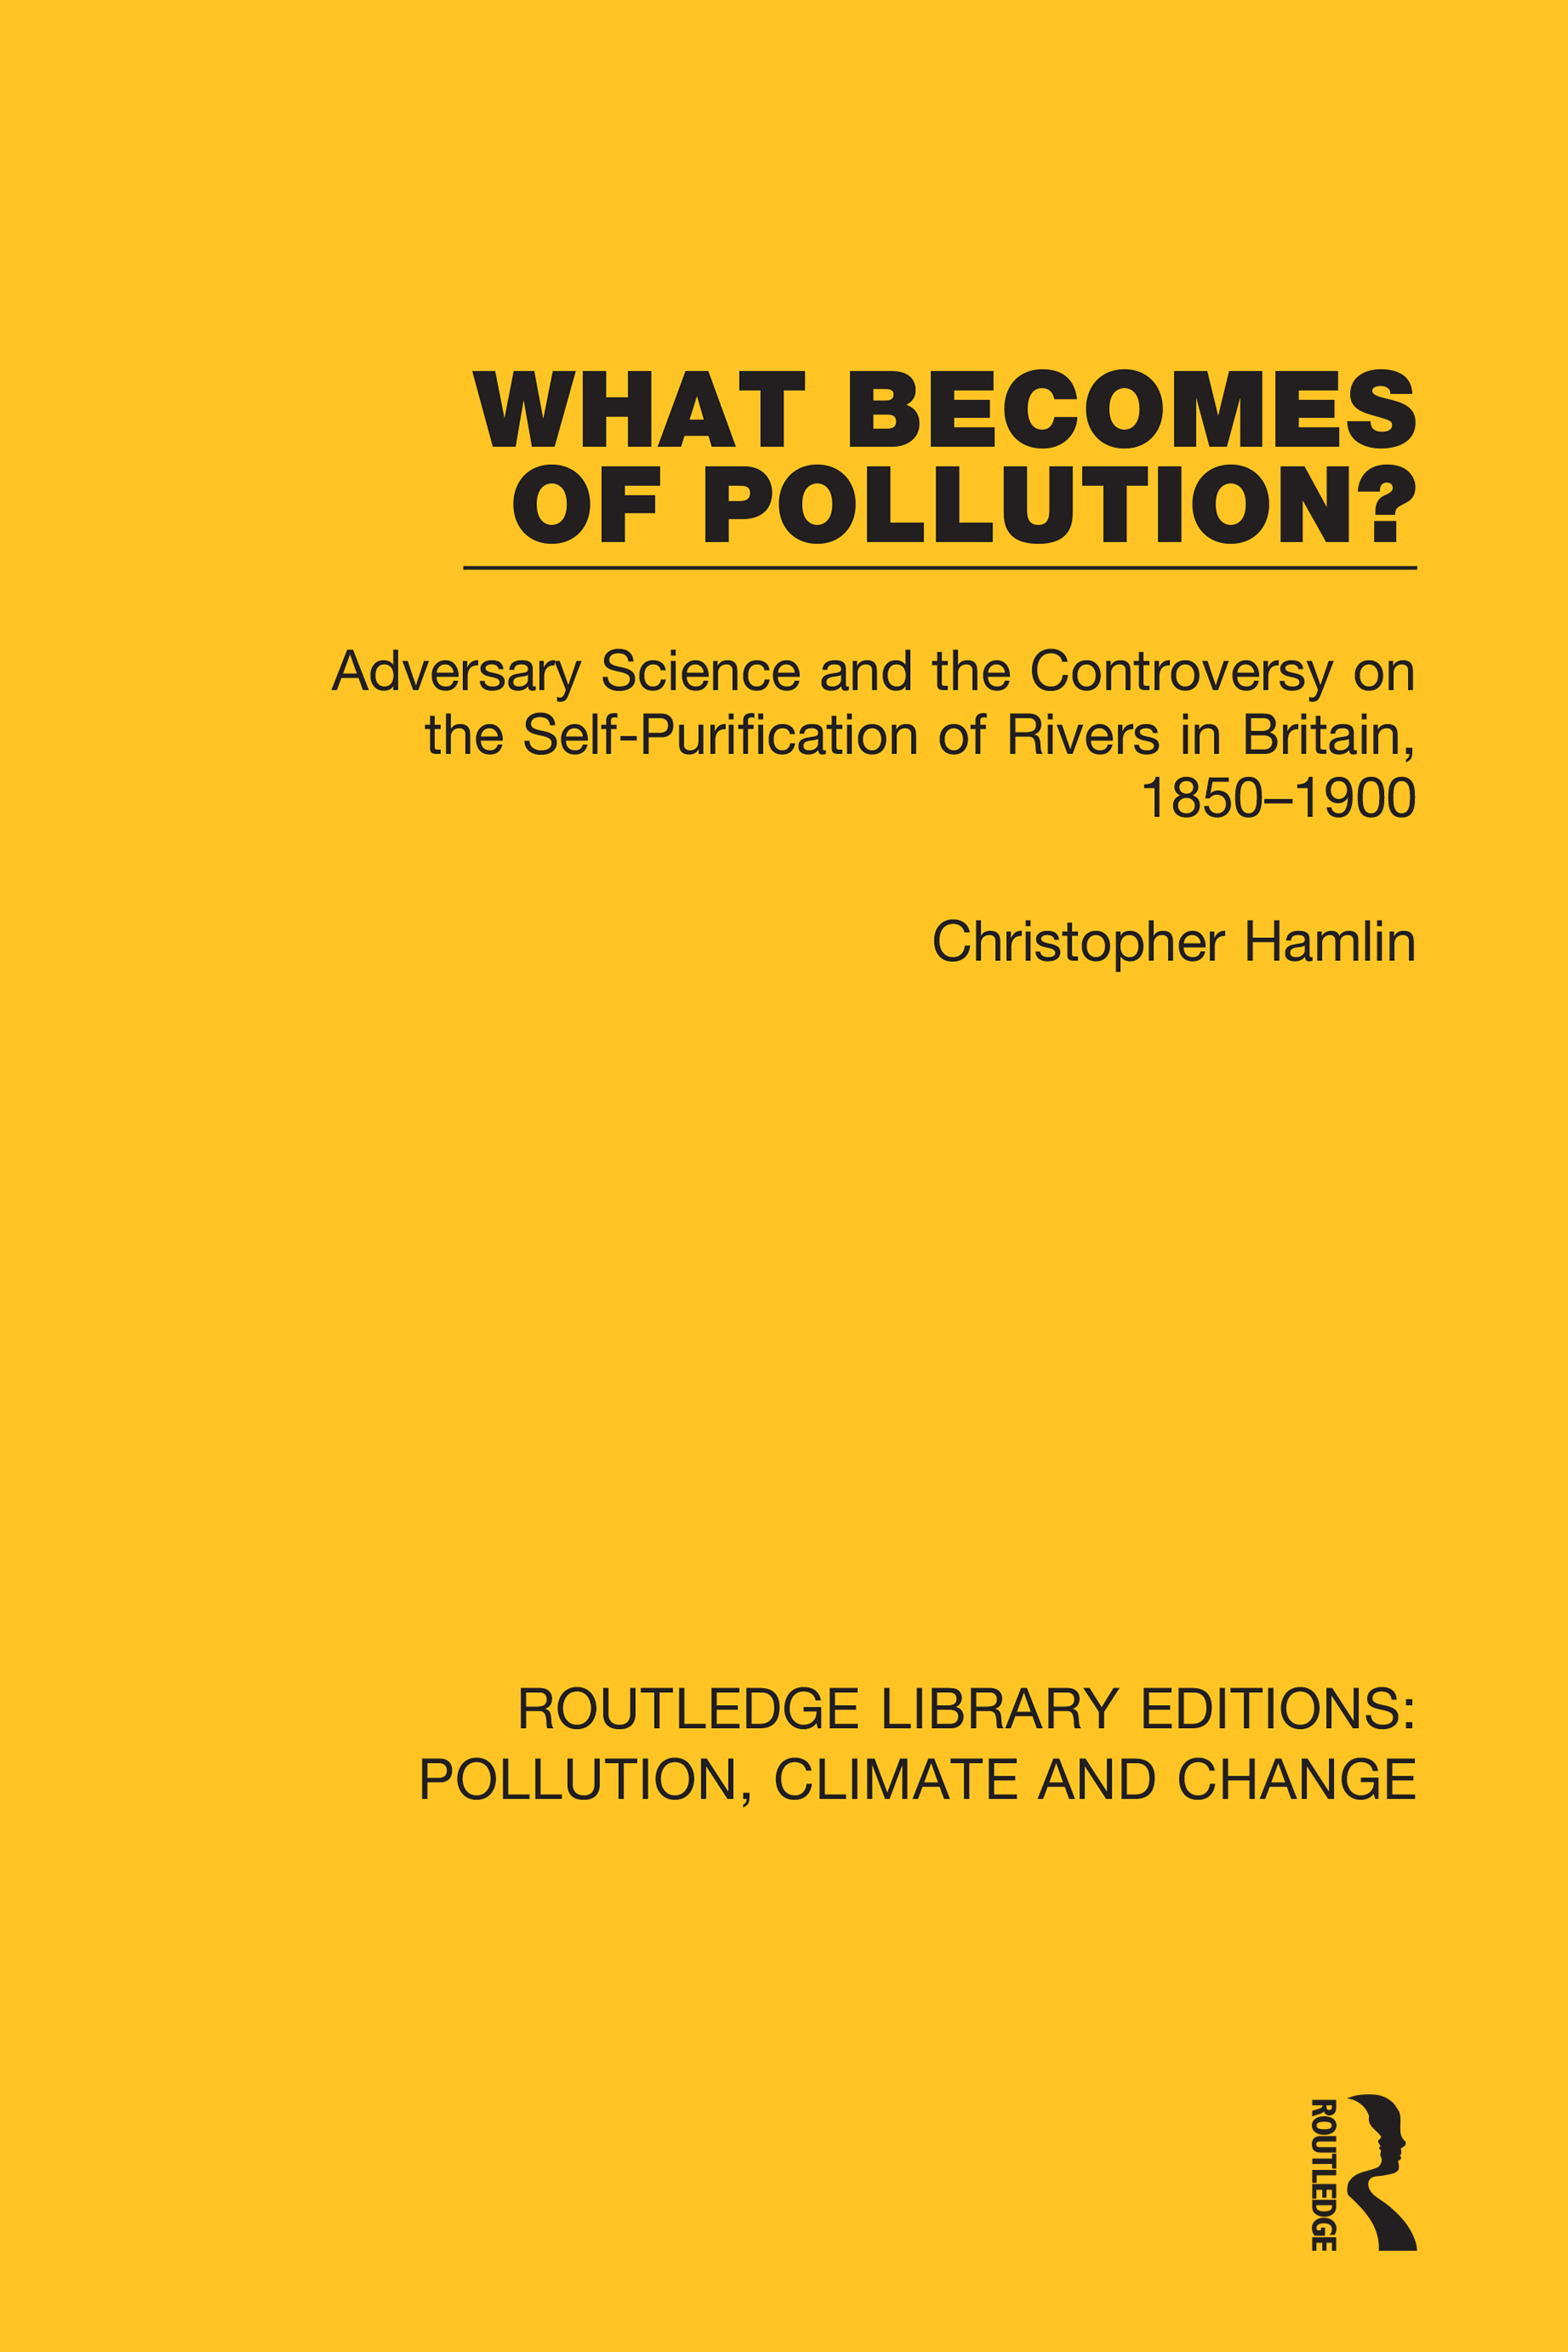 What Becomes of Pollution?: Adversary Science and the Controversy on the Self-Purification of Rivers in Britain, 1850-1900 book cover